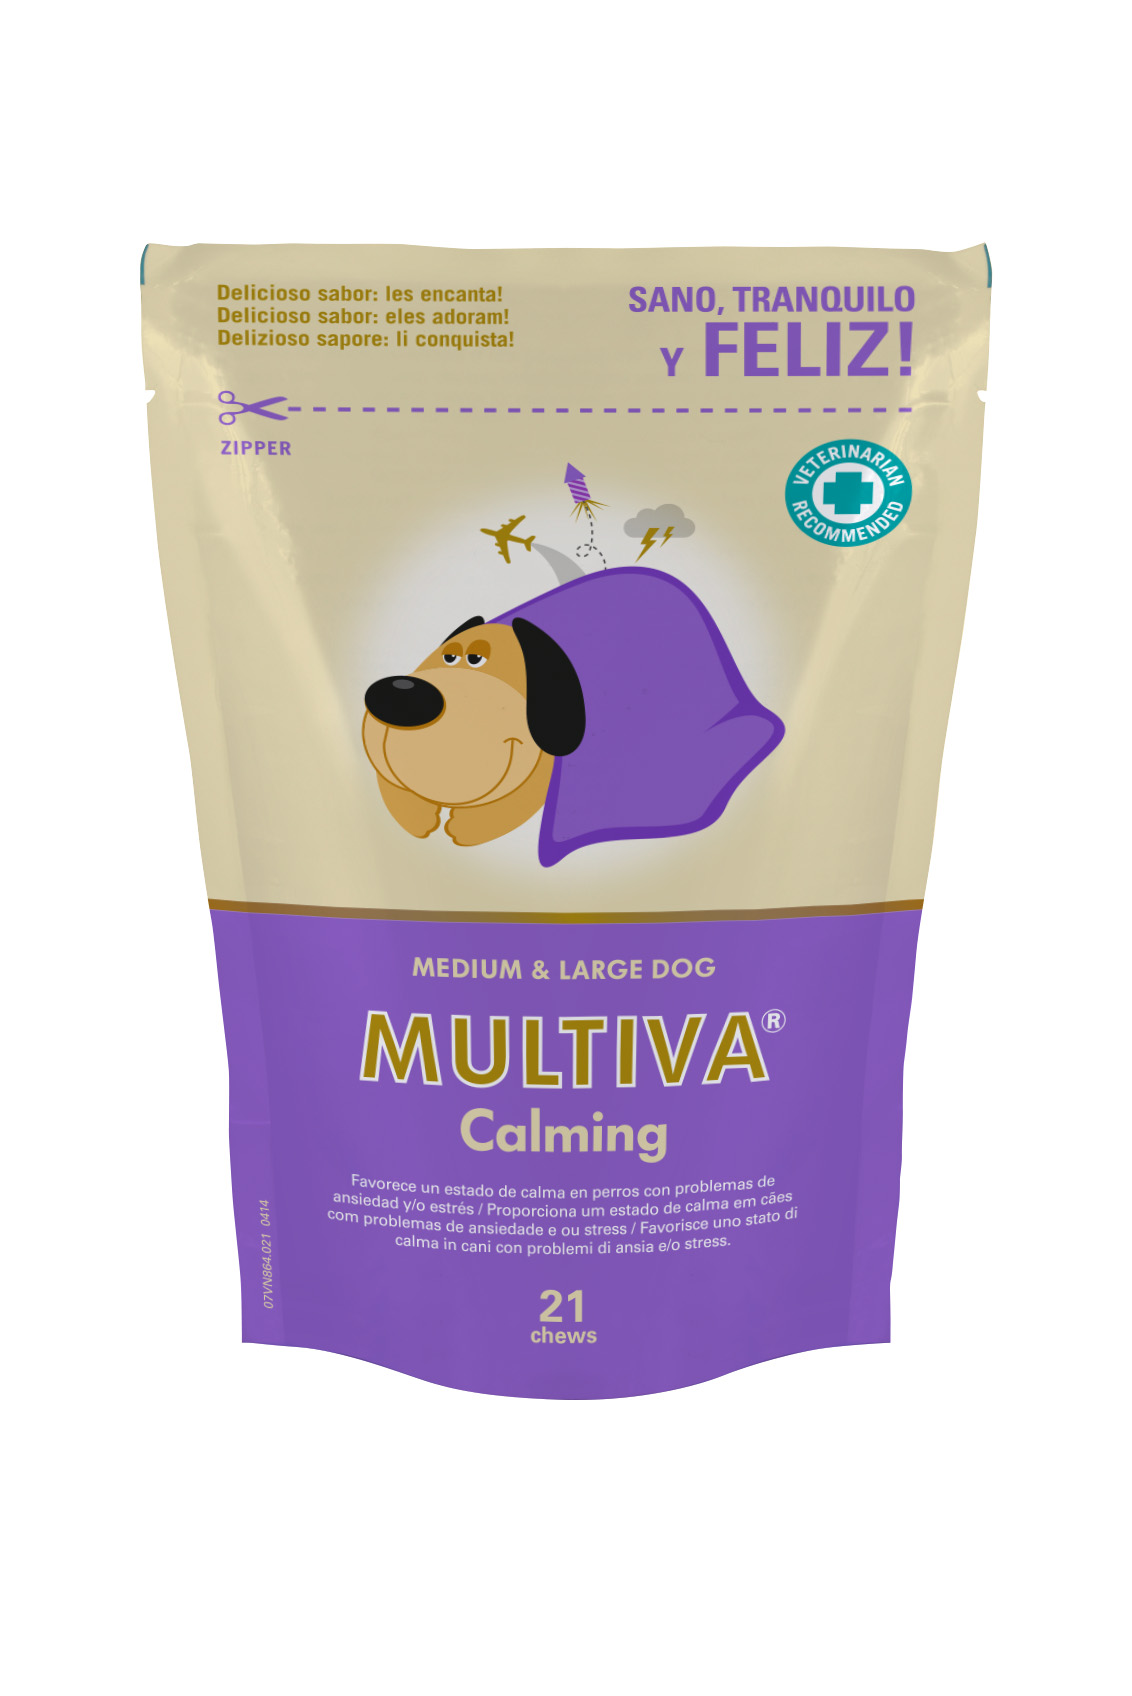 MULTIVA CALMING MEDIUM LARGE DOG 21 CHEWS